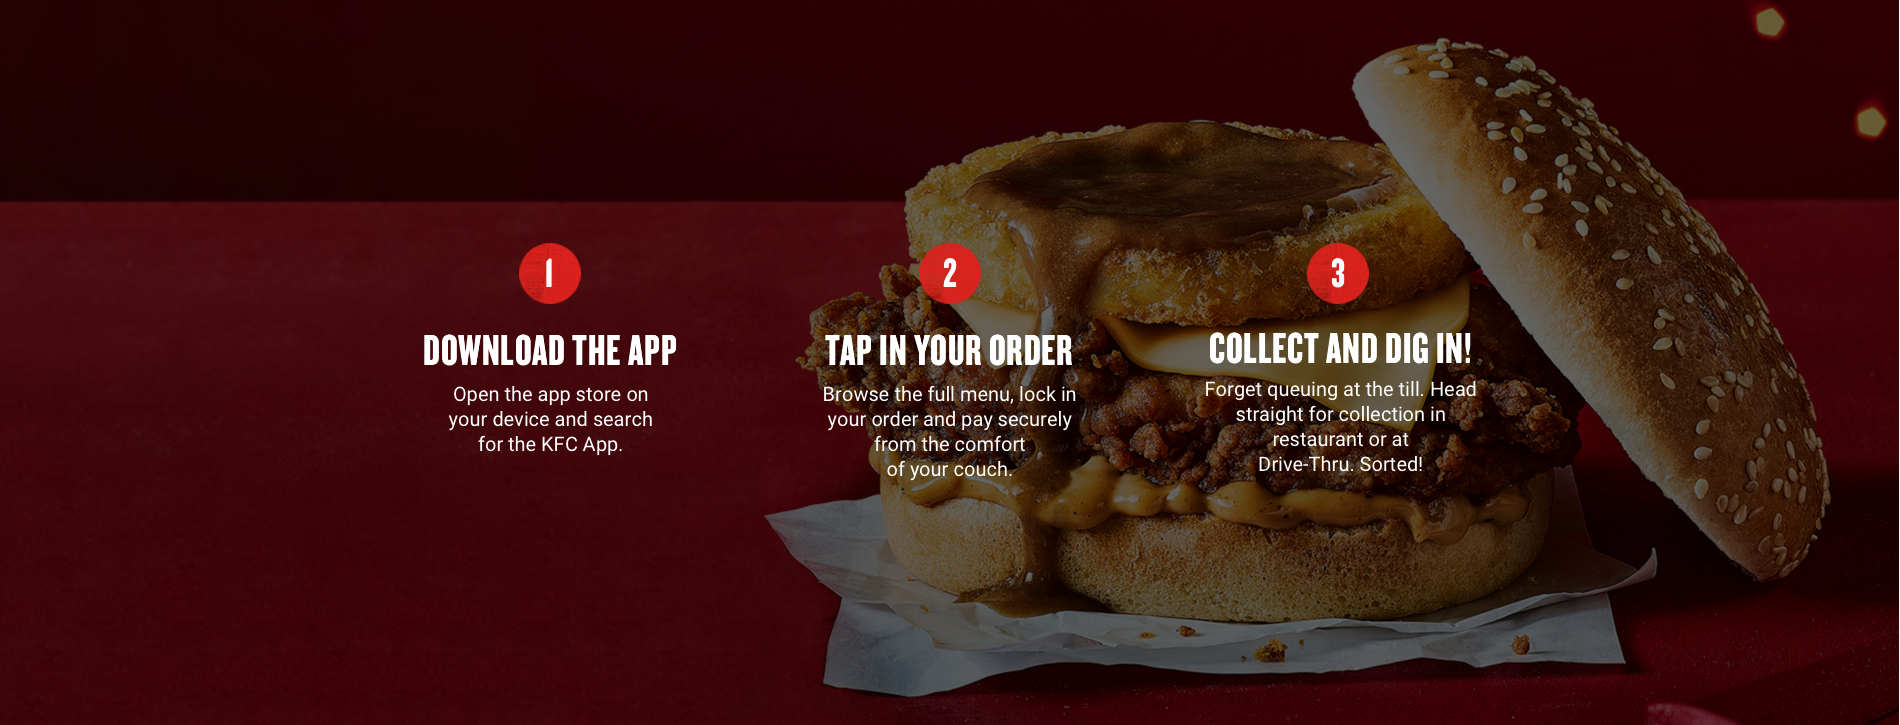 Download the app, tap in your order, collect and dig in